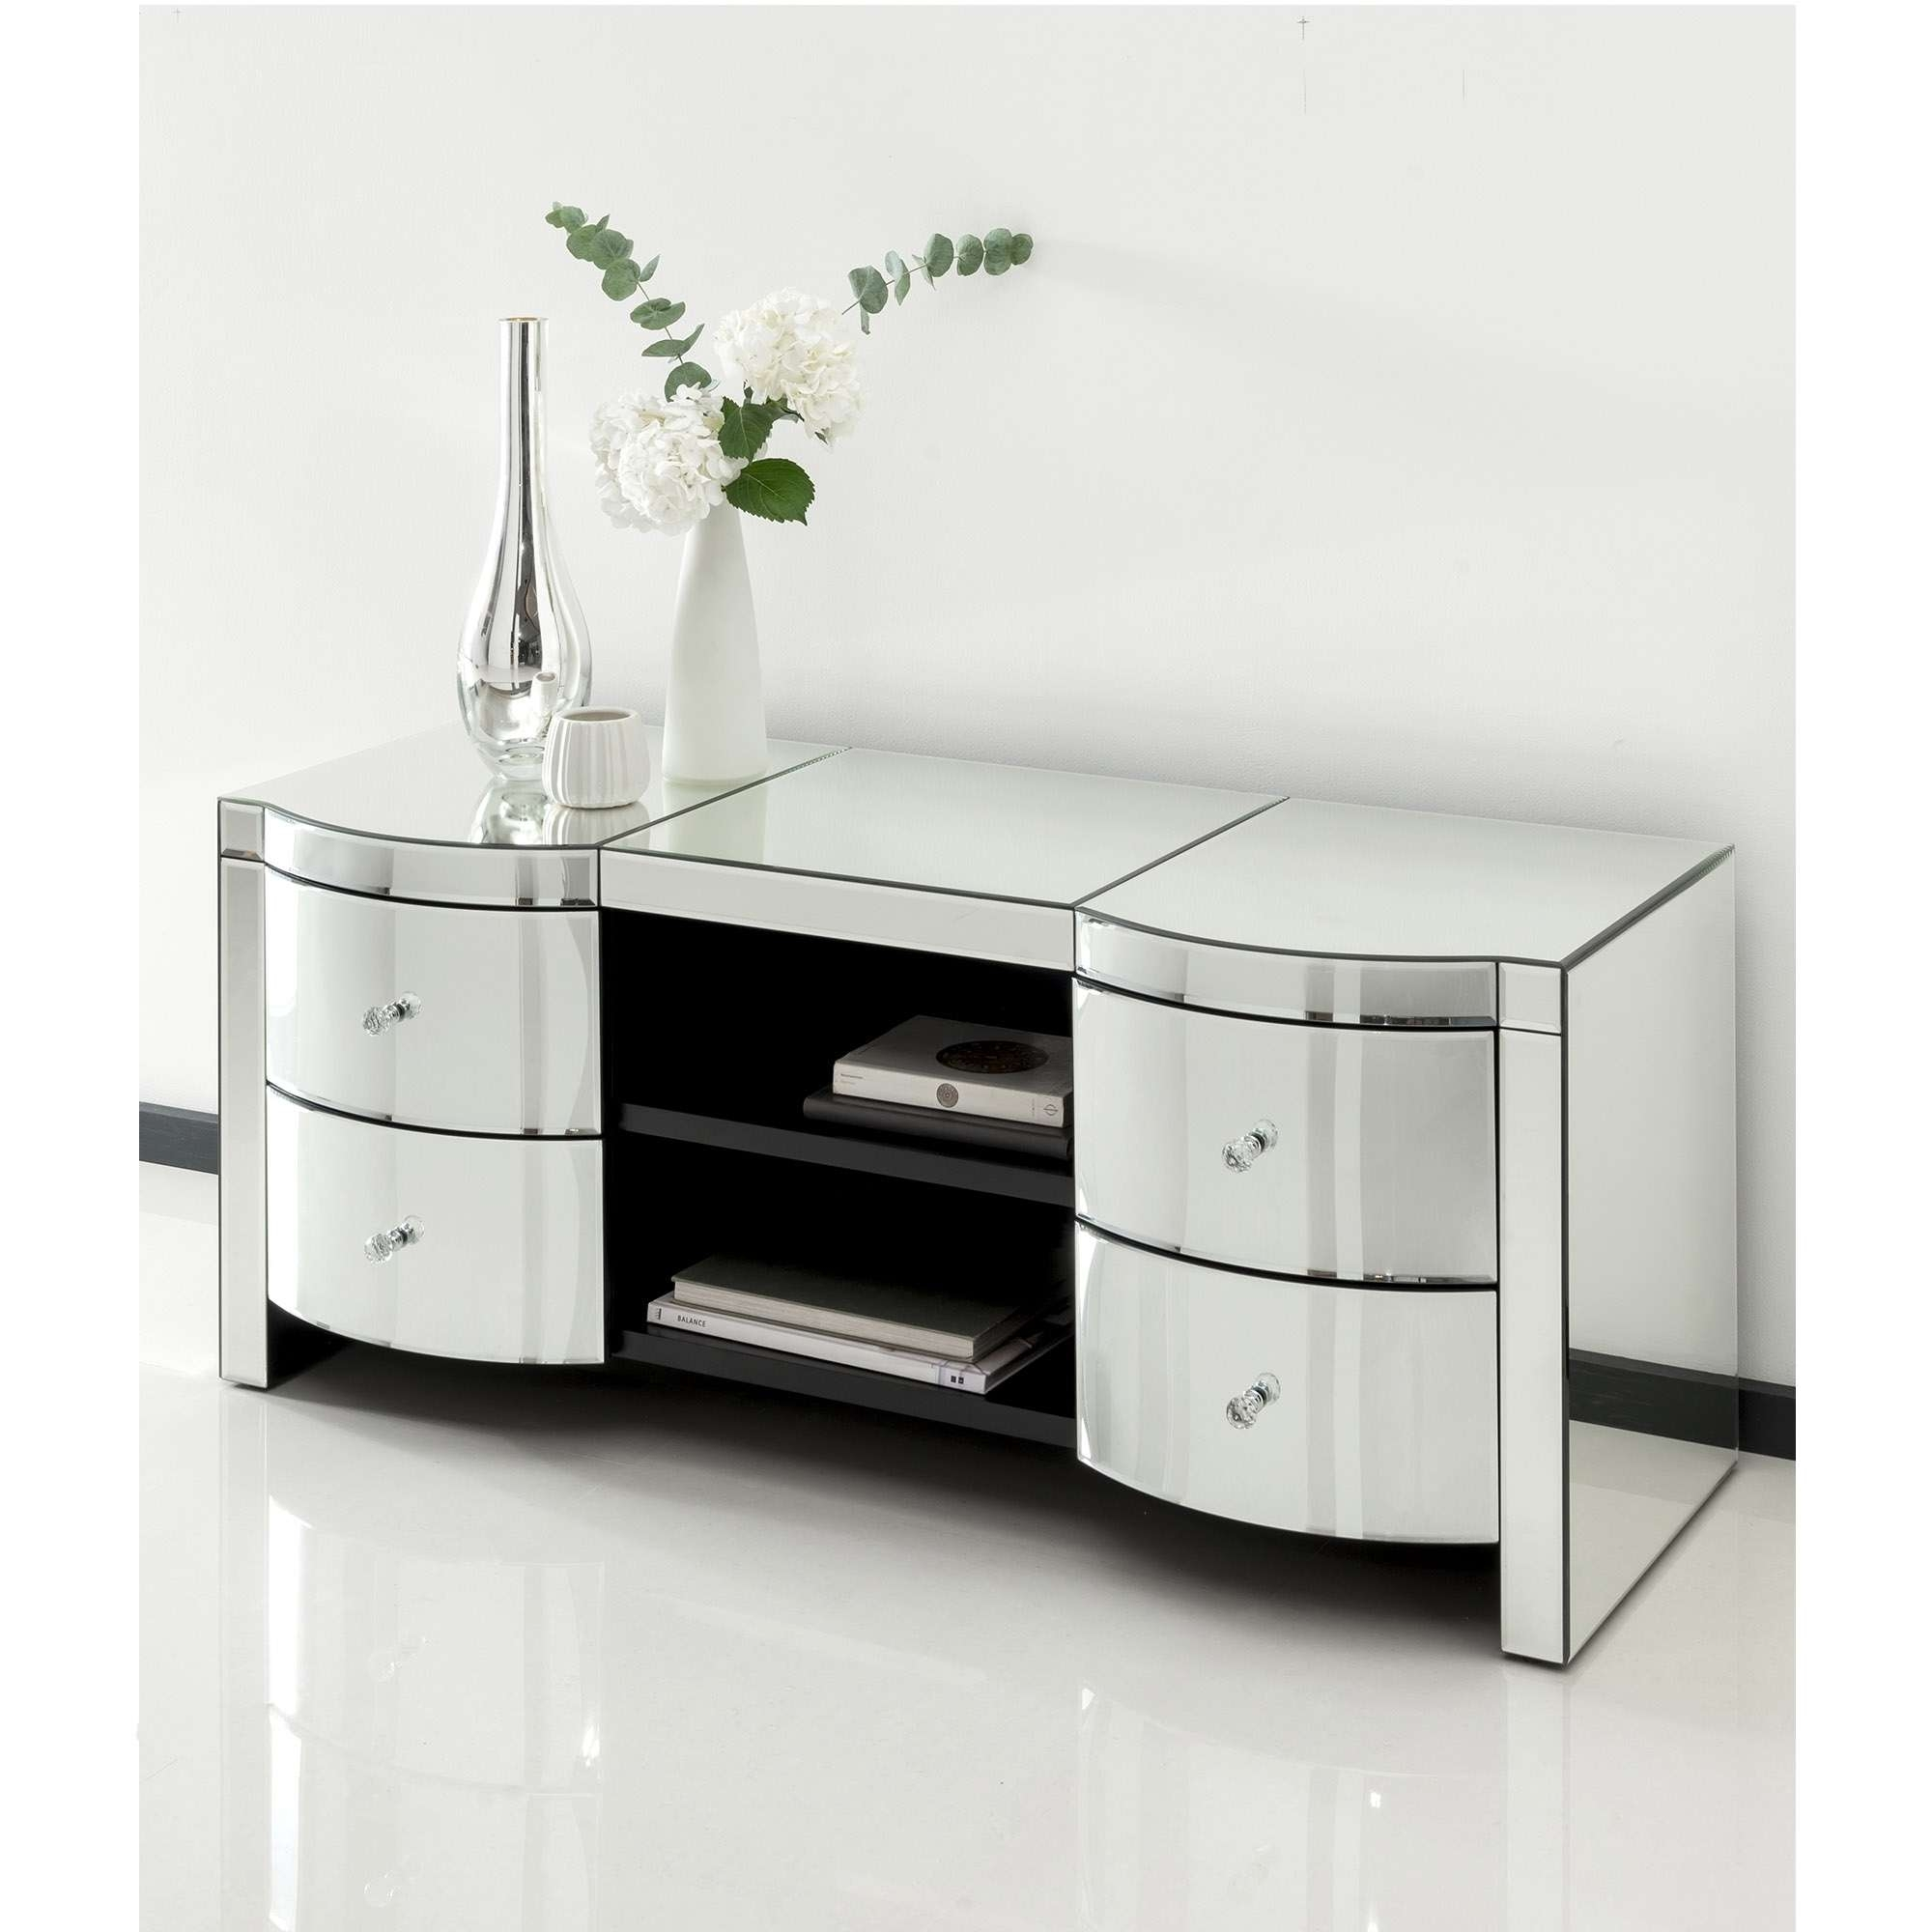 Romano Crystal Mirrored Tv Cabinet | Venetian Mirrored Furniture Inside Mirror Tv Cabinets (View 15 of 20)